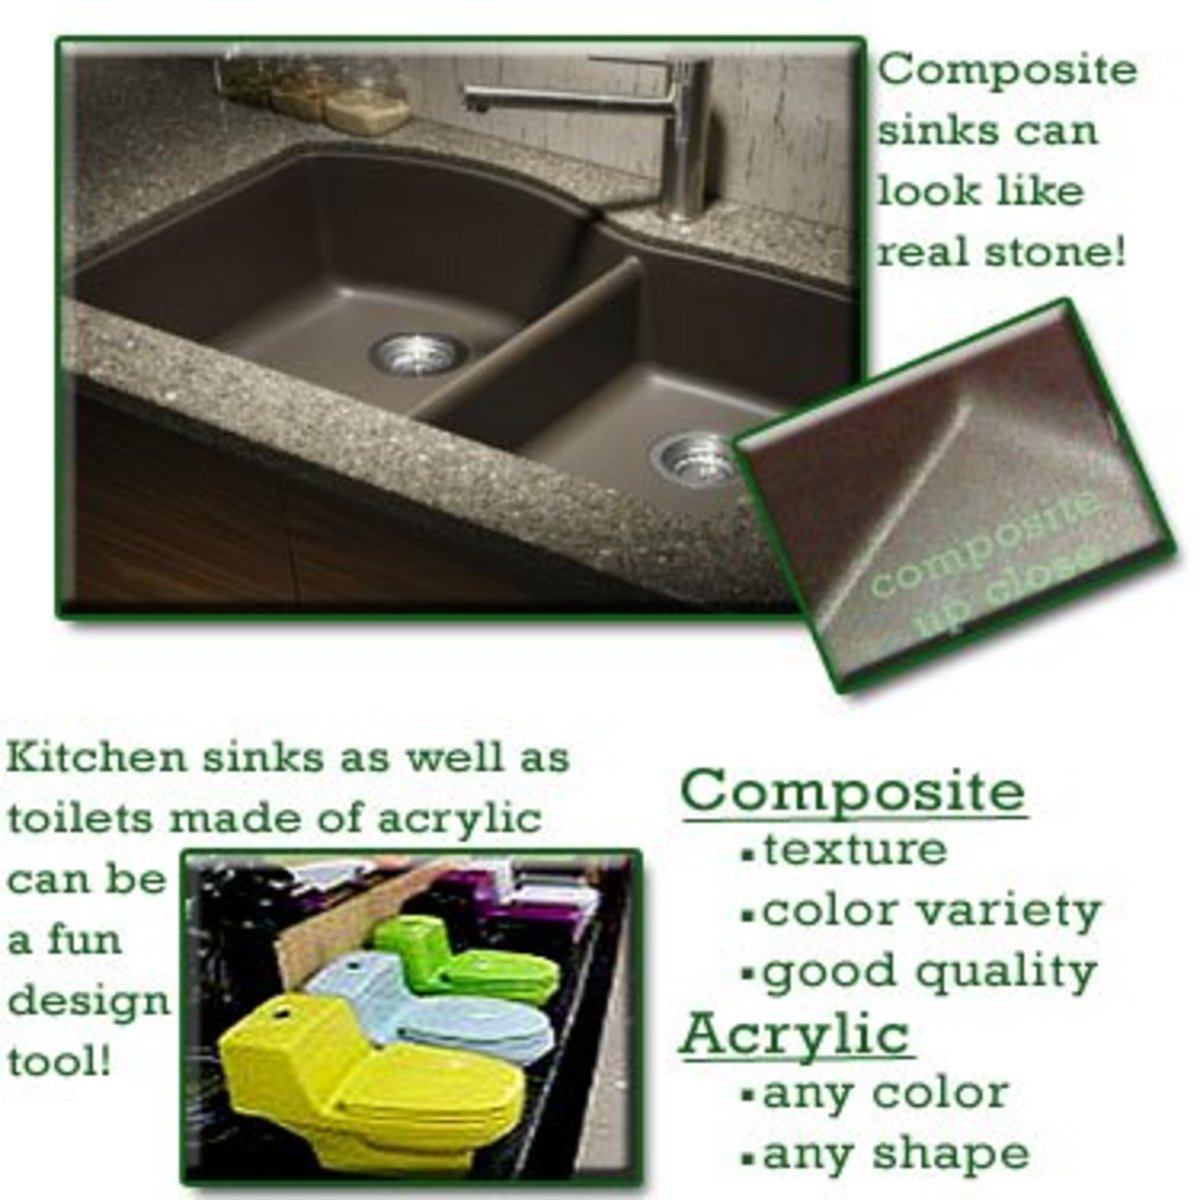 Finding A Kitchen Sink Made Out Of The Right Material For Your Taste Requires A Little